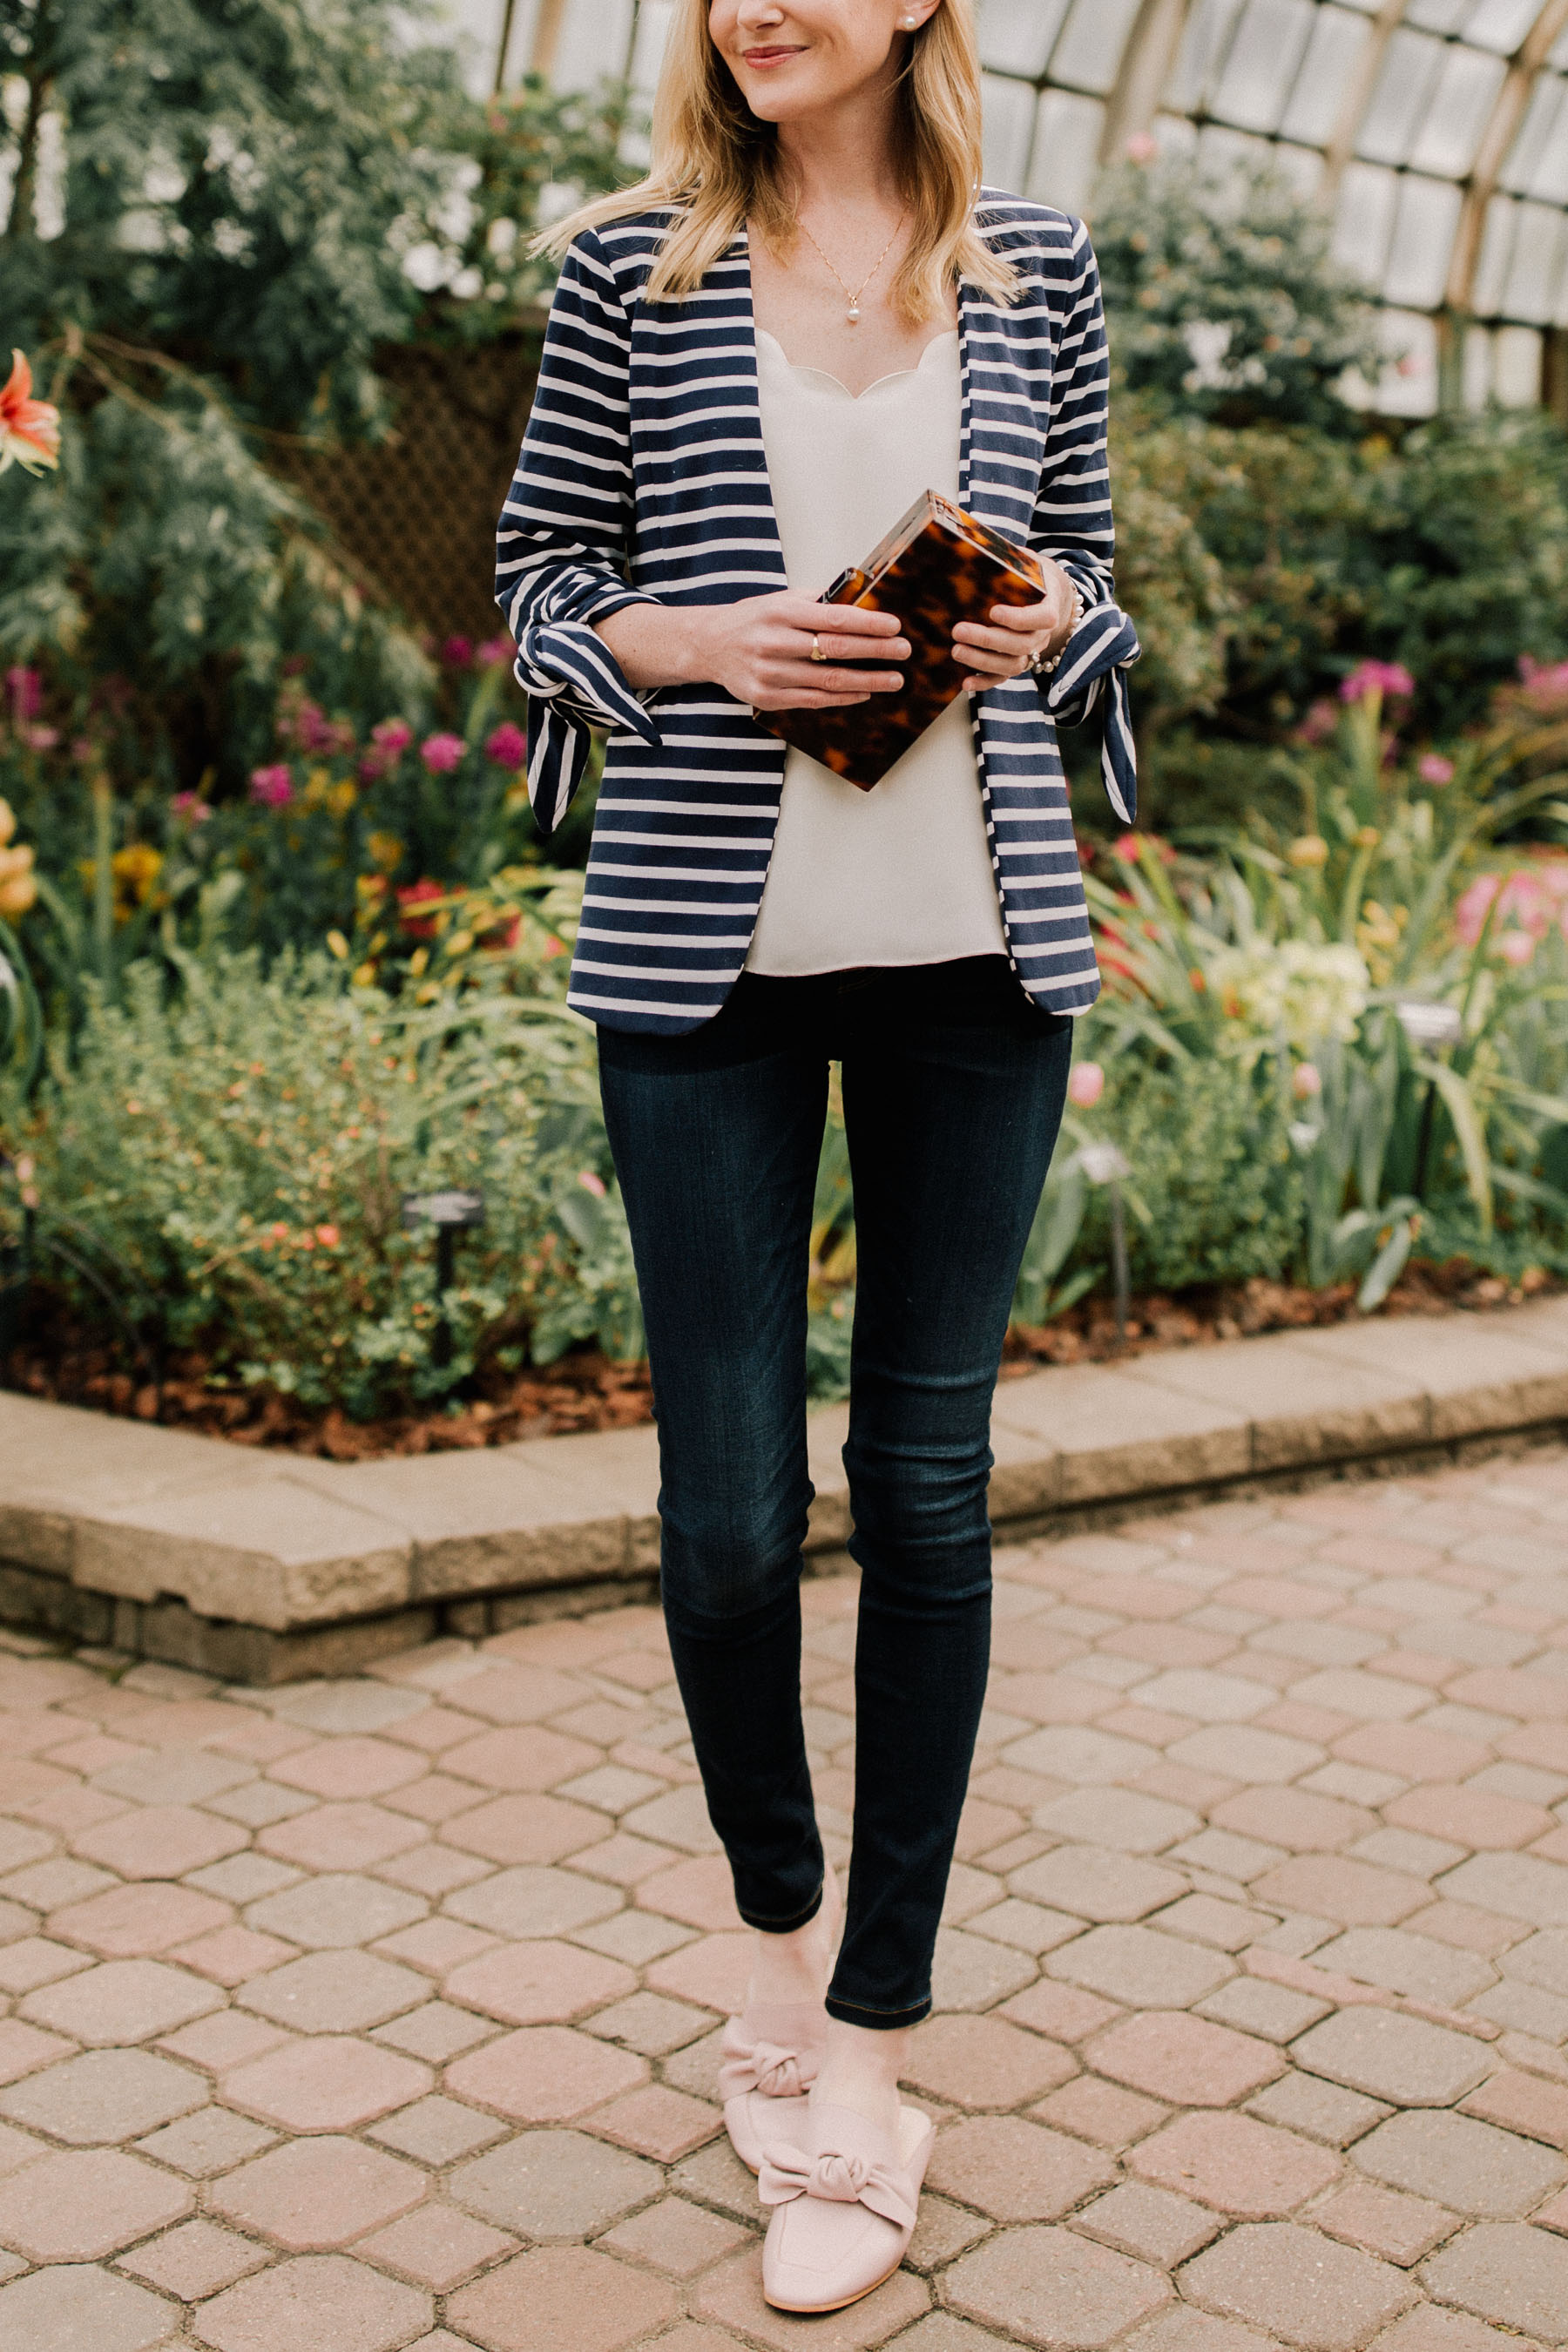 Pearls & Stripes: Transitional Look. Navy striped blazer and pearls outfit